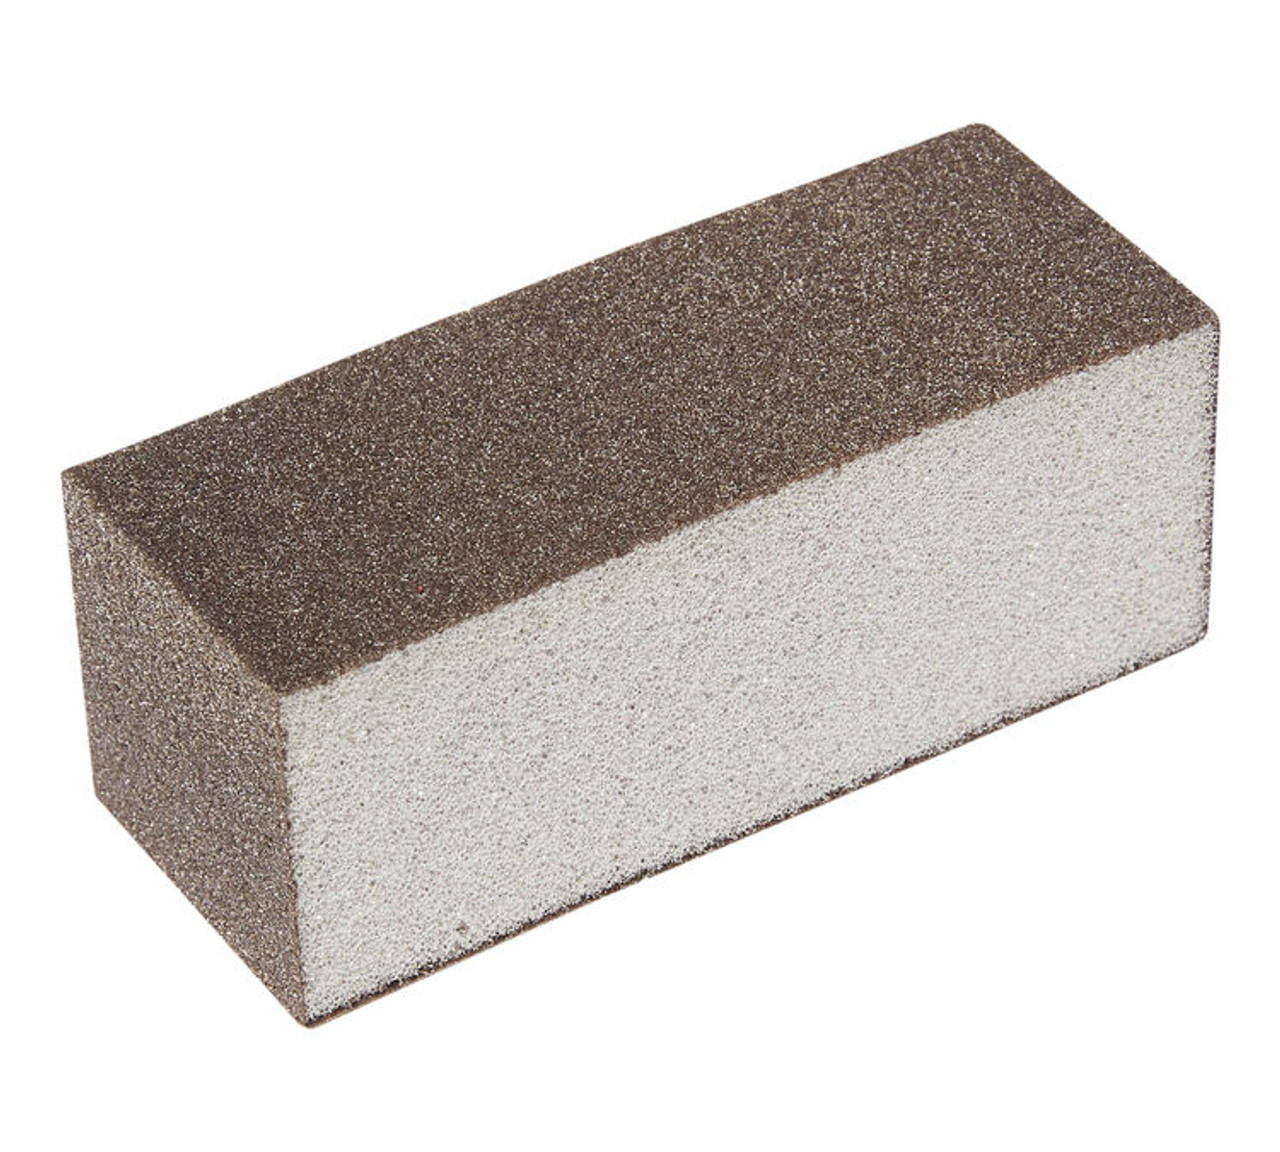 Black Diamond Sanding Block